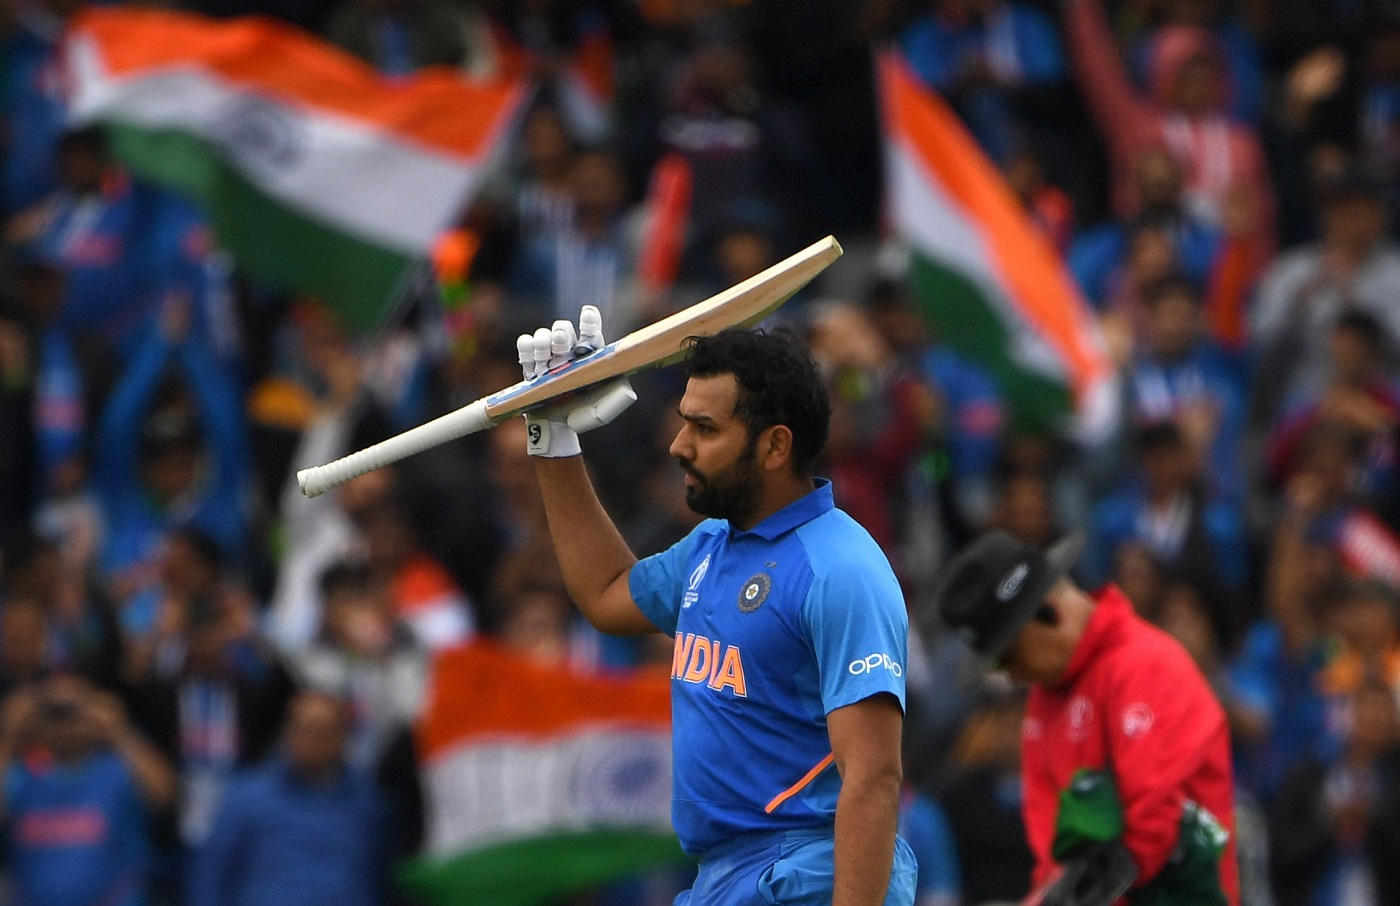 ICC World Cup 2019: Sachin Tendulkar Heaps Praise on Rohit Sharma, Says he is Batting at a Different Level